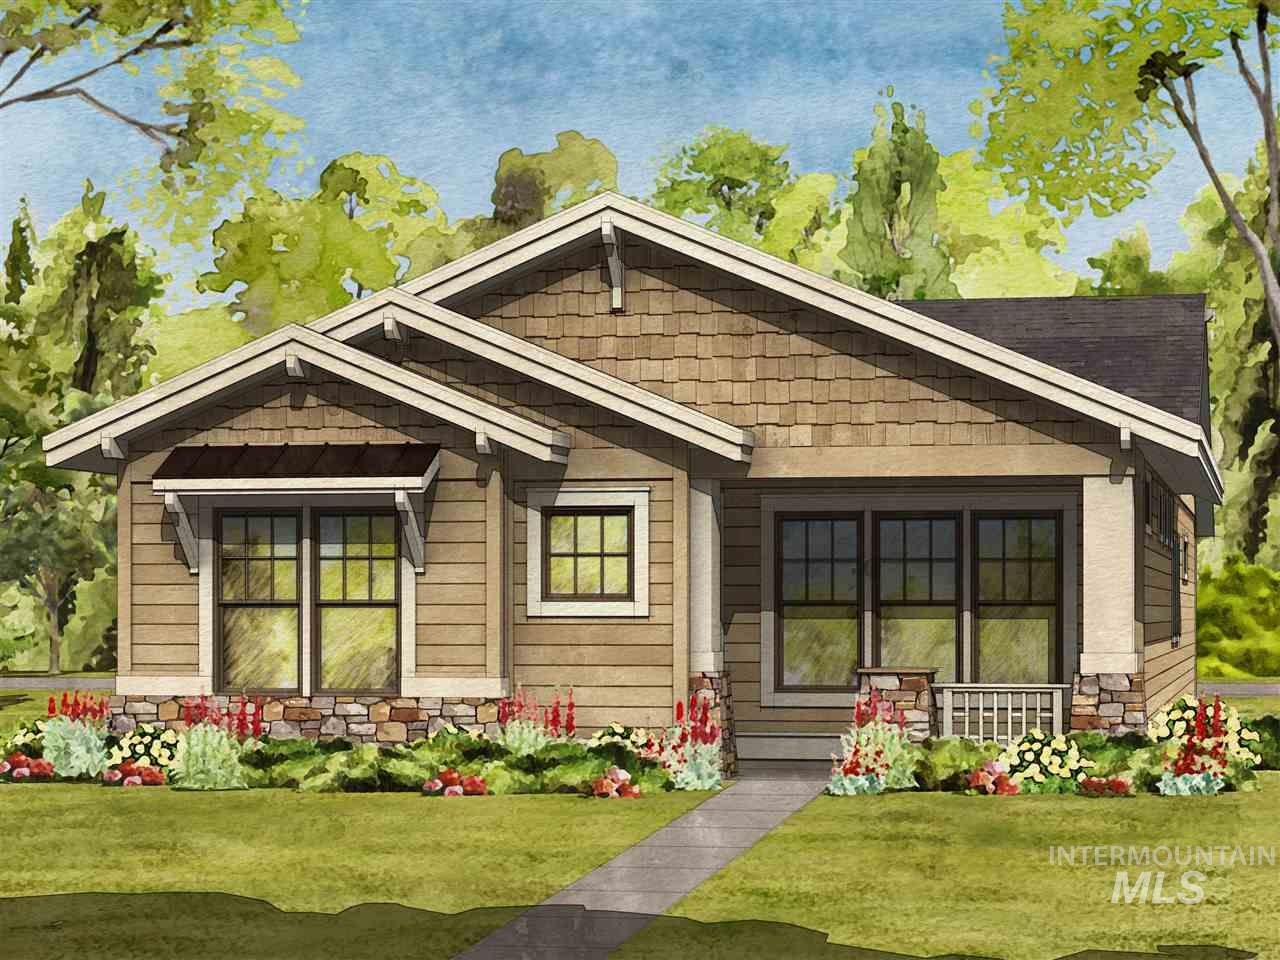 The Minnie Belle by Brighton Homes, an efficiently designed floor plan. The open concept makes this home perfect for entertaining.  Relax in the beautiful master suite with large walk-in closet. The beautiful kitchen features custom cabinets, walk-in pantry, Bosch stainless steel appliances and Kohler throughout, a Brighton standard! 100% Energy Star Certified. Interior specs shown are subject to change prior to completion date.